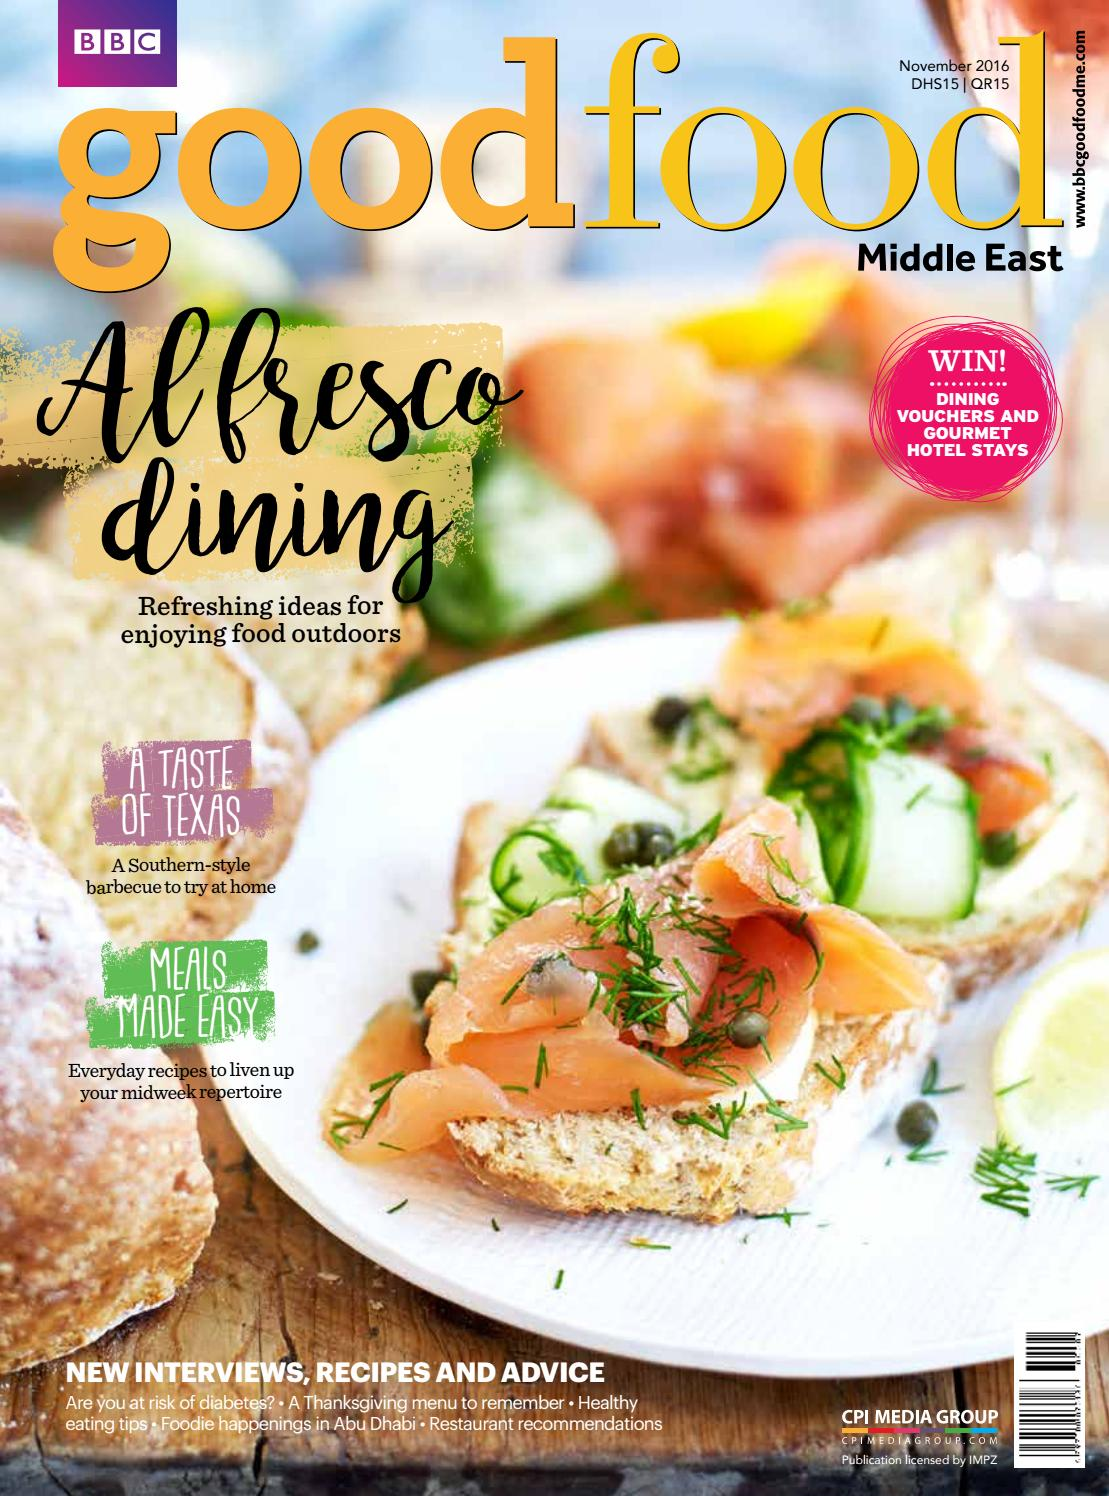 Bbc good food me 2016 november by bbc good food me issuu forumfinder Image collections